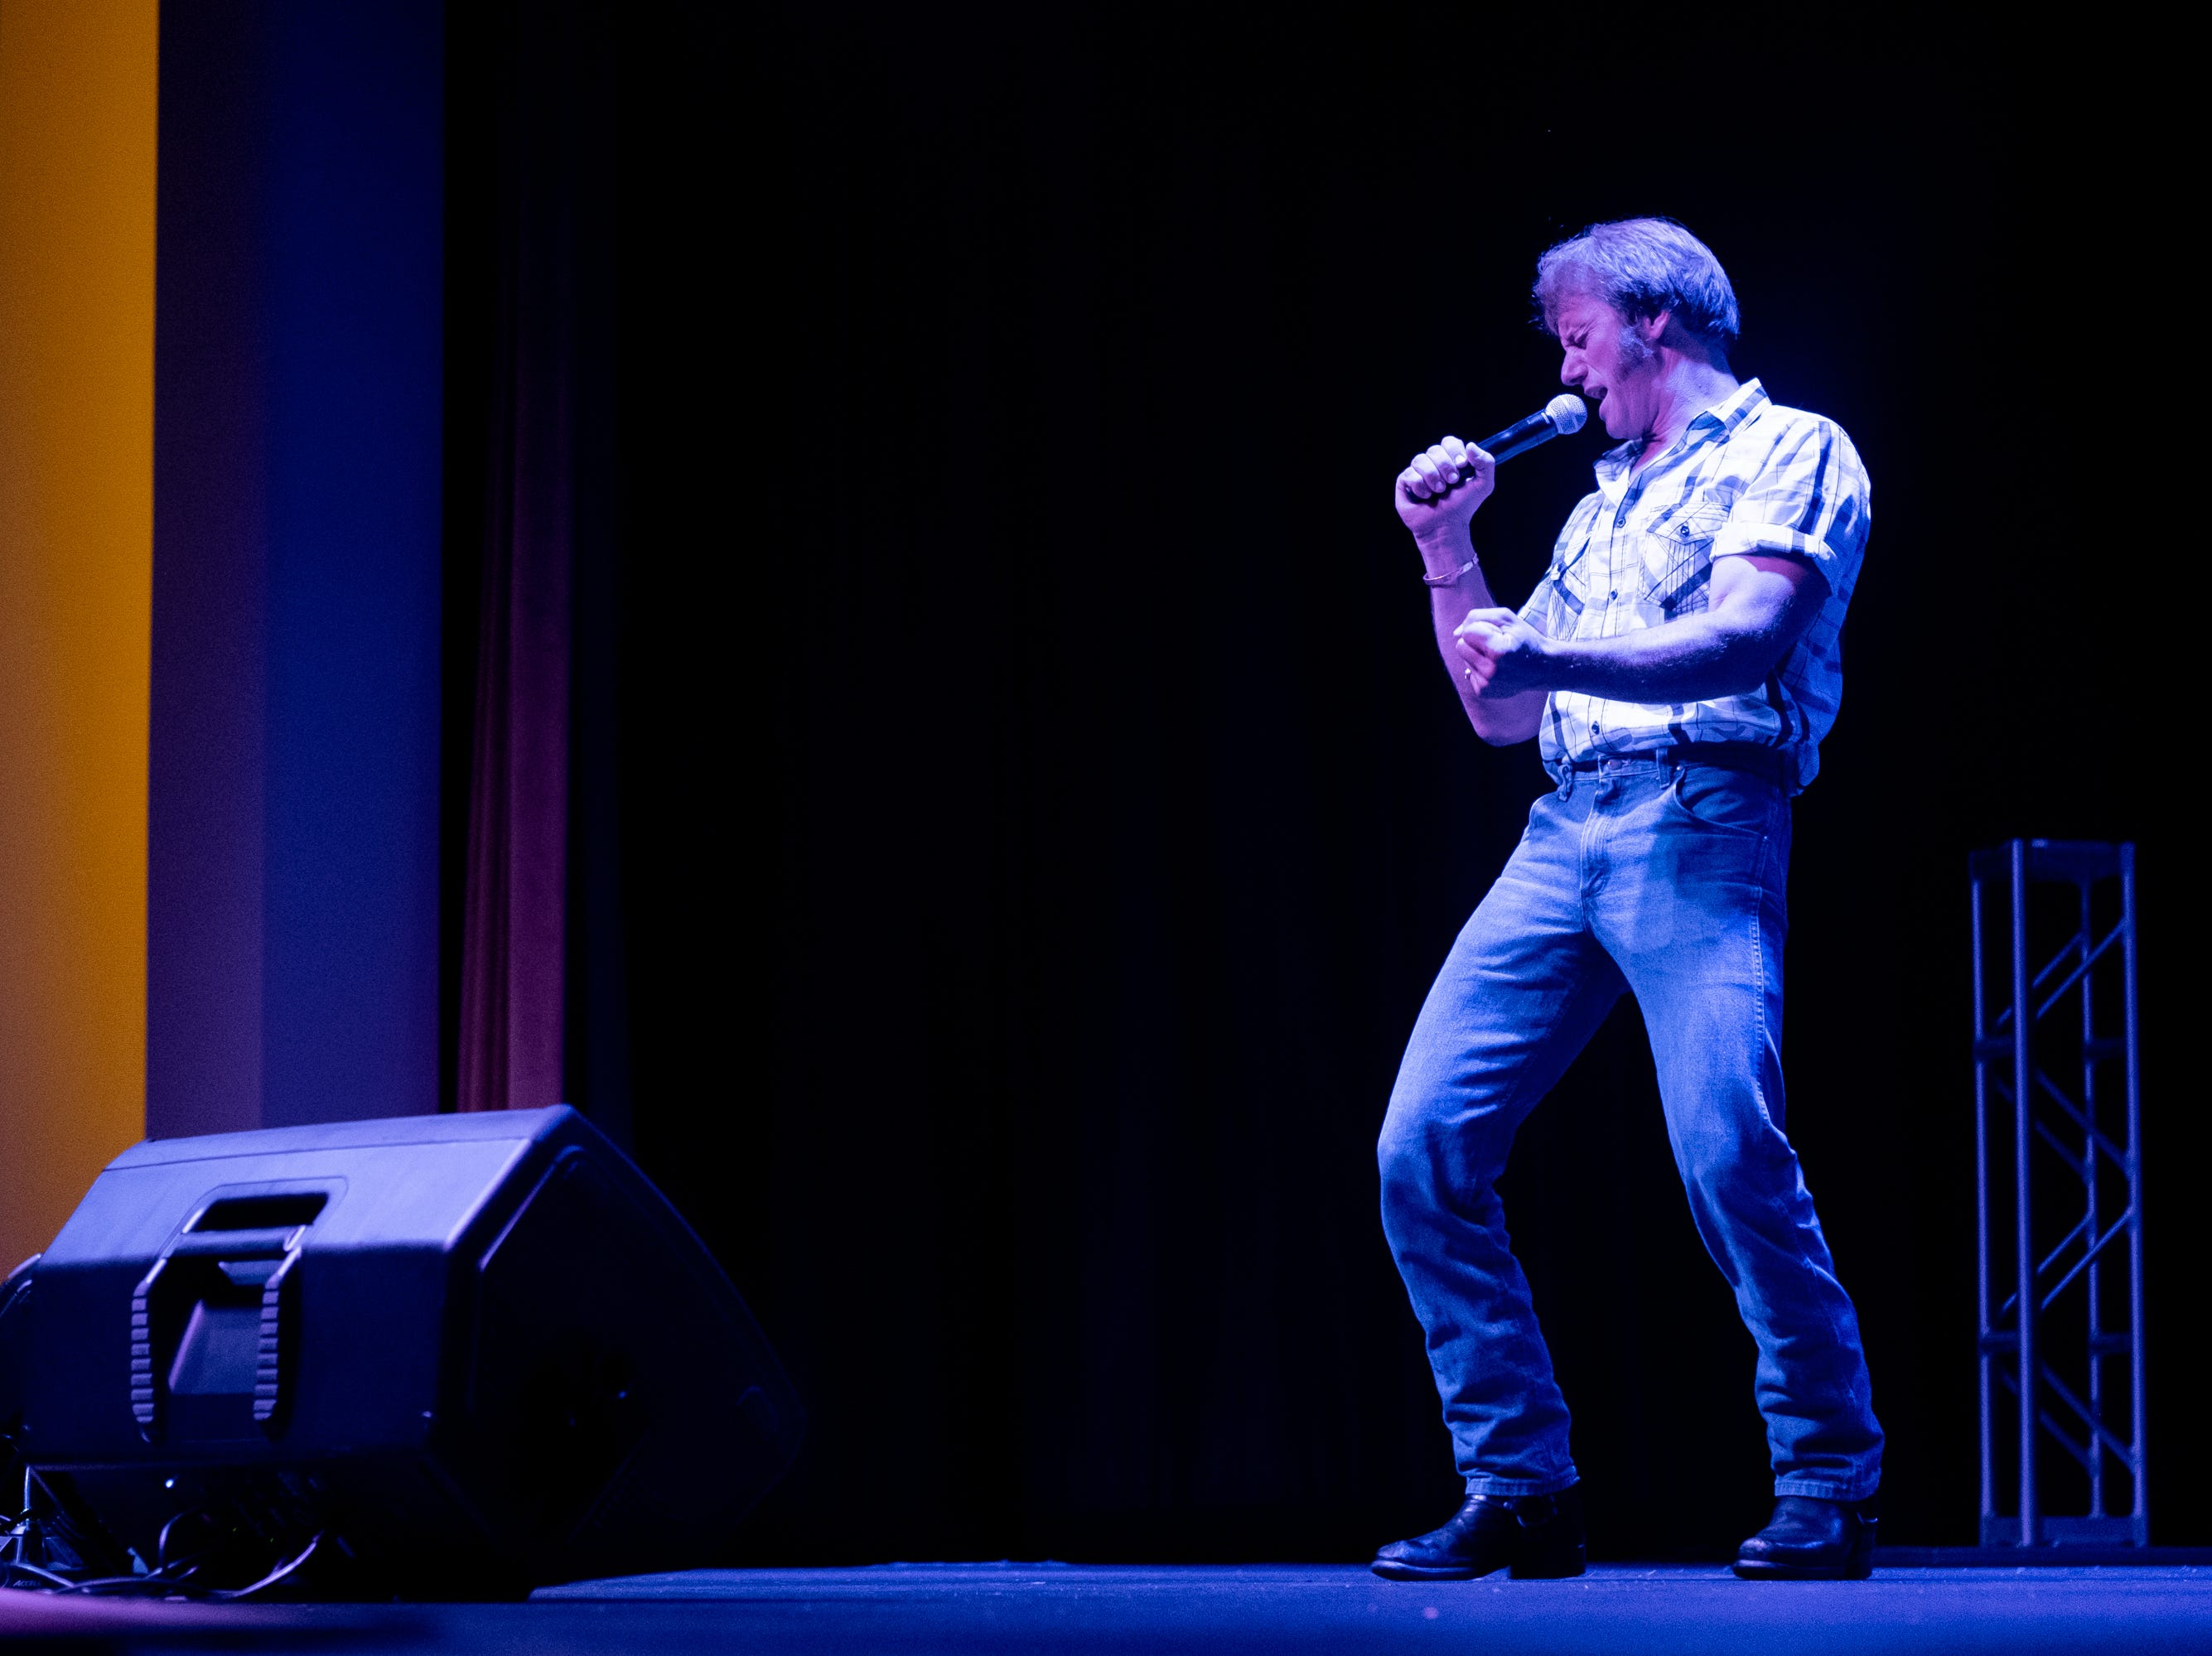 """Steve Sogura, winner of the Penticon Elvis Festival, performs """"Let Me Be There"""" at Graceland's Guest House theater on Thursday afternoon."""